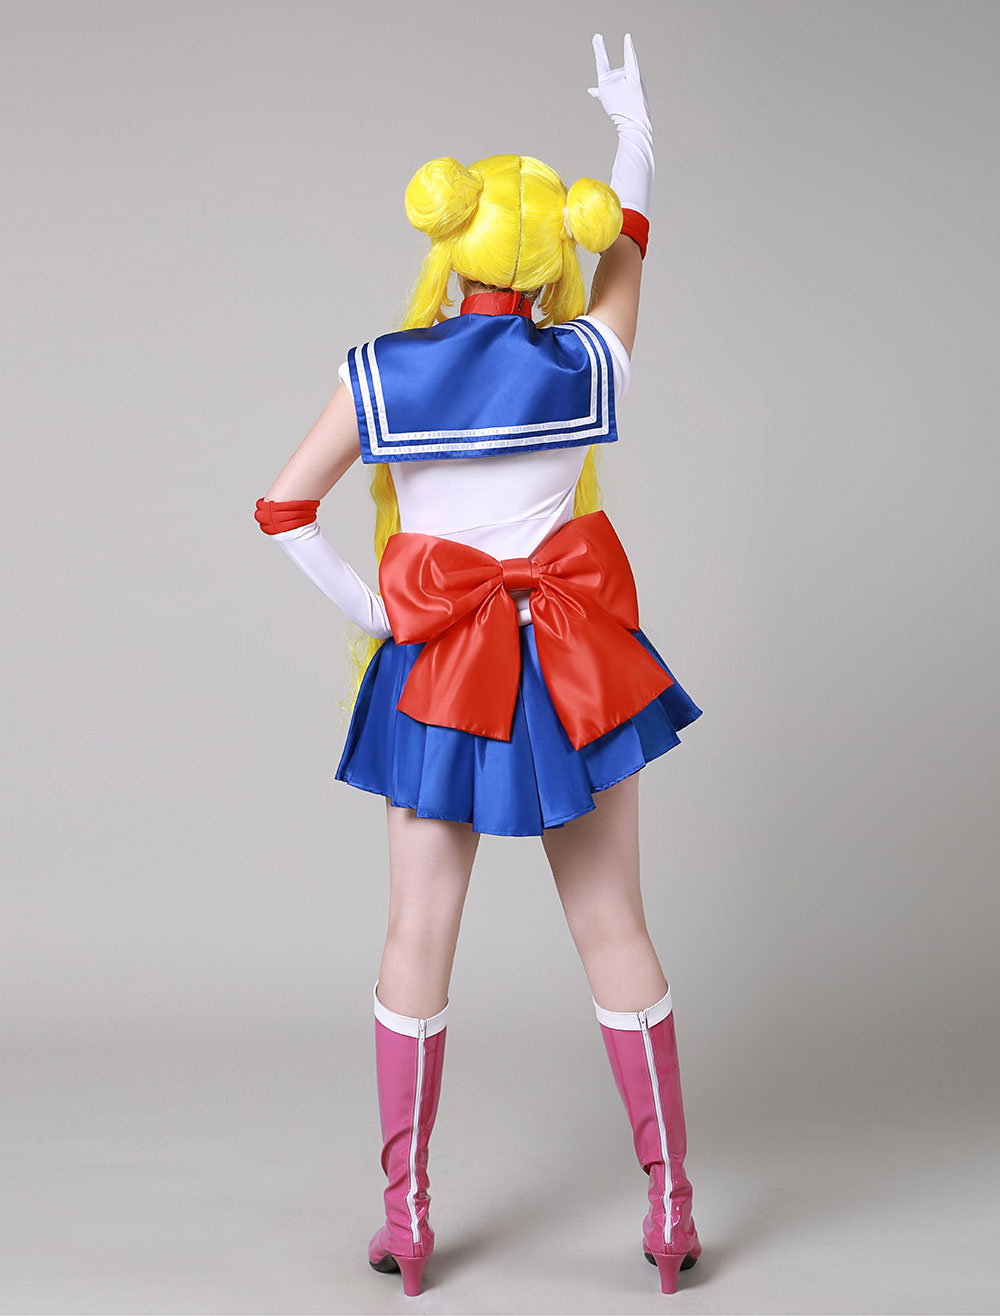 22d774fb720e5 Sailor Moon Tsukino Usagi Cosplay Costumes Halloween - Milanoo.com